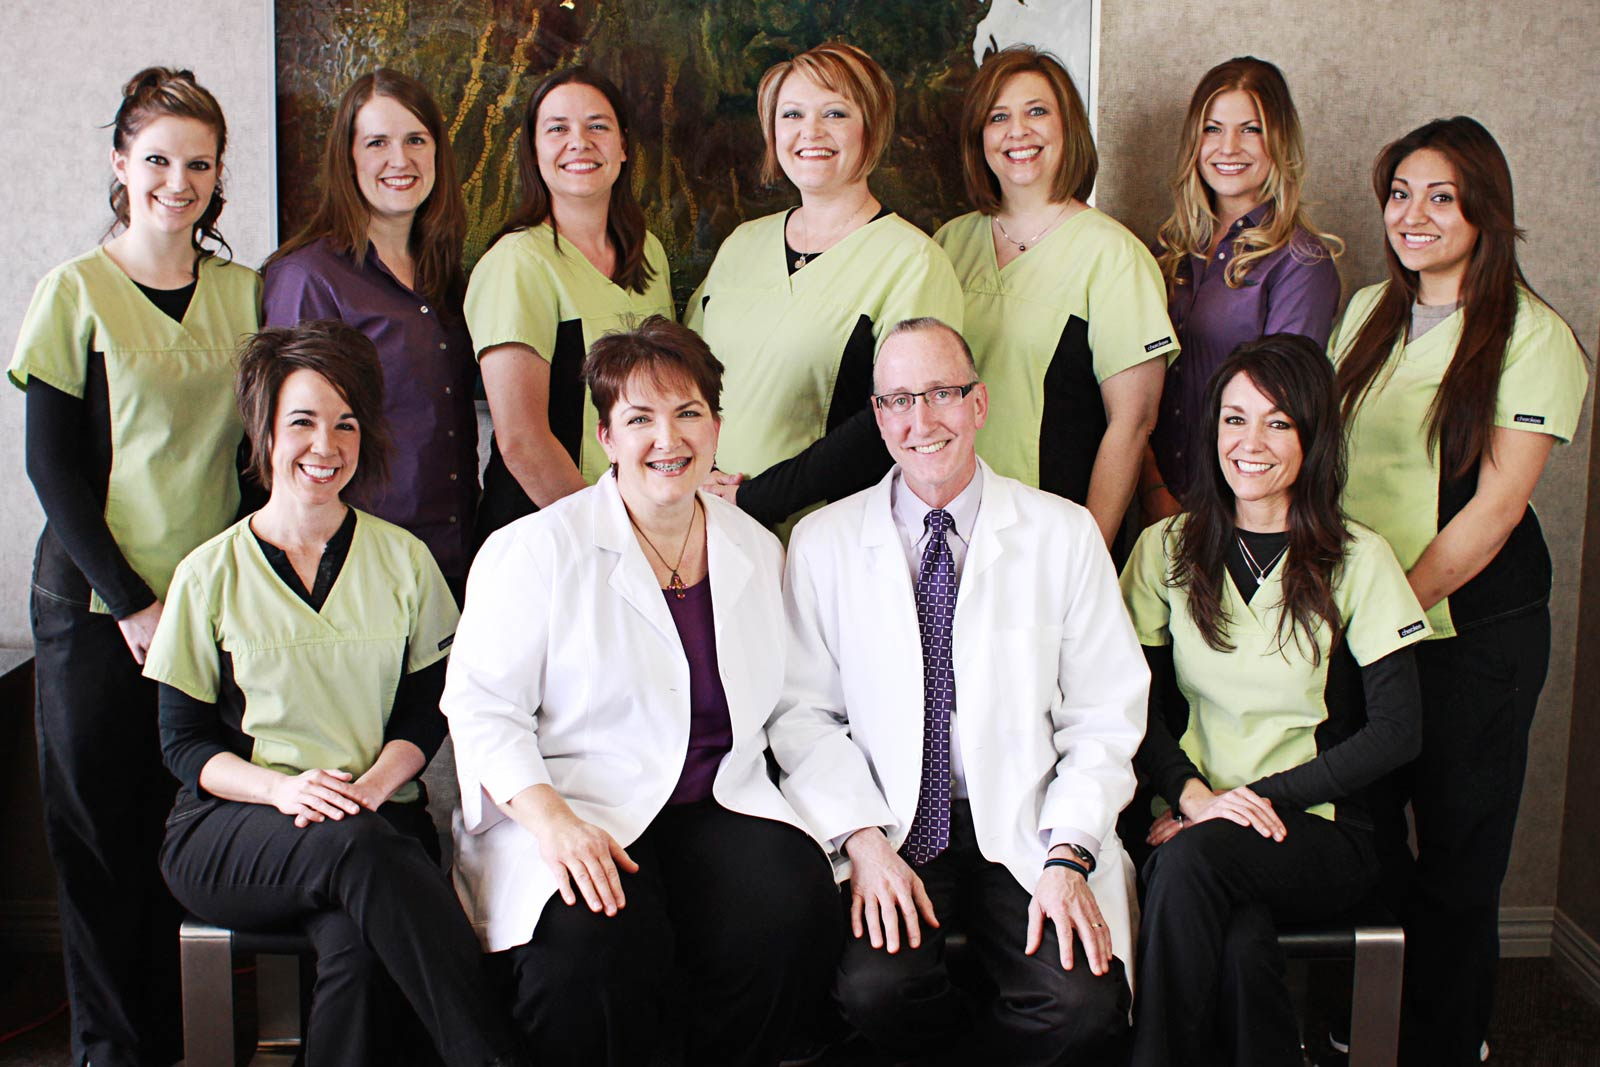 The staff at Fox Grape Dentistry